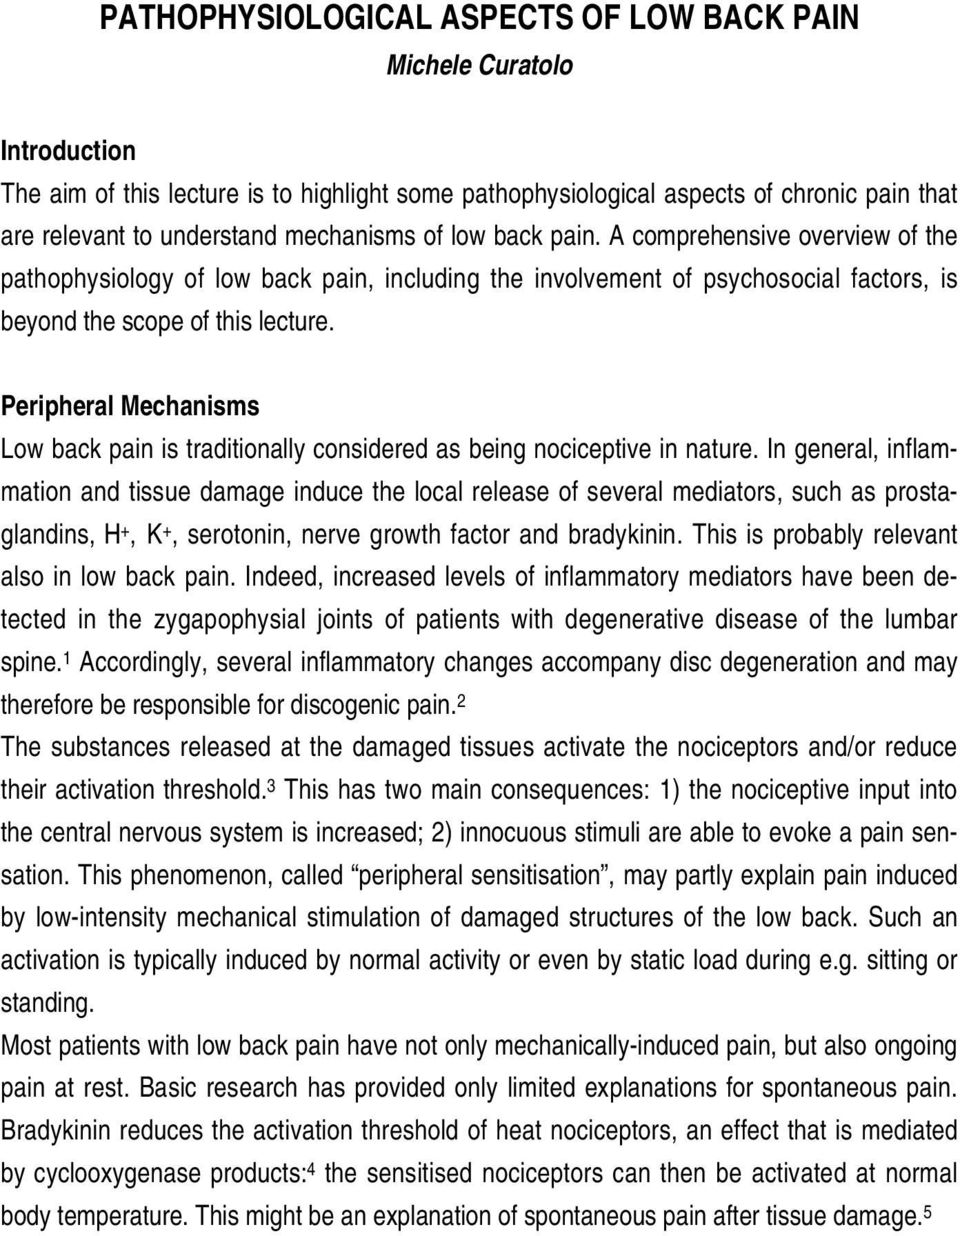 Peripheral Mechanisms Low back pain is traditionally considered as being nociceptive in nature.